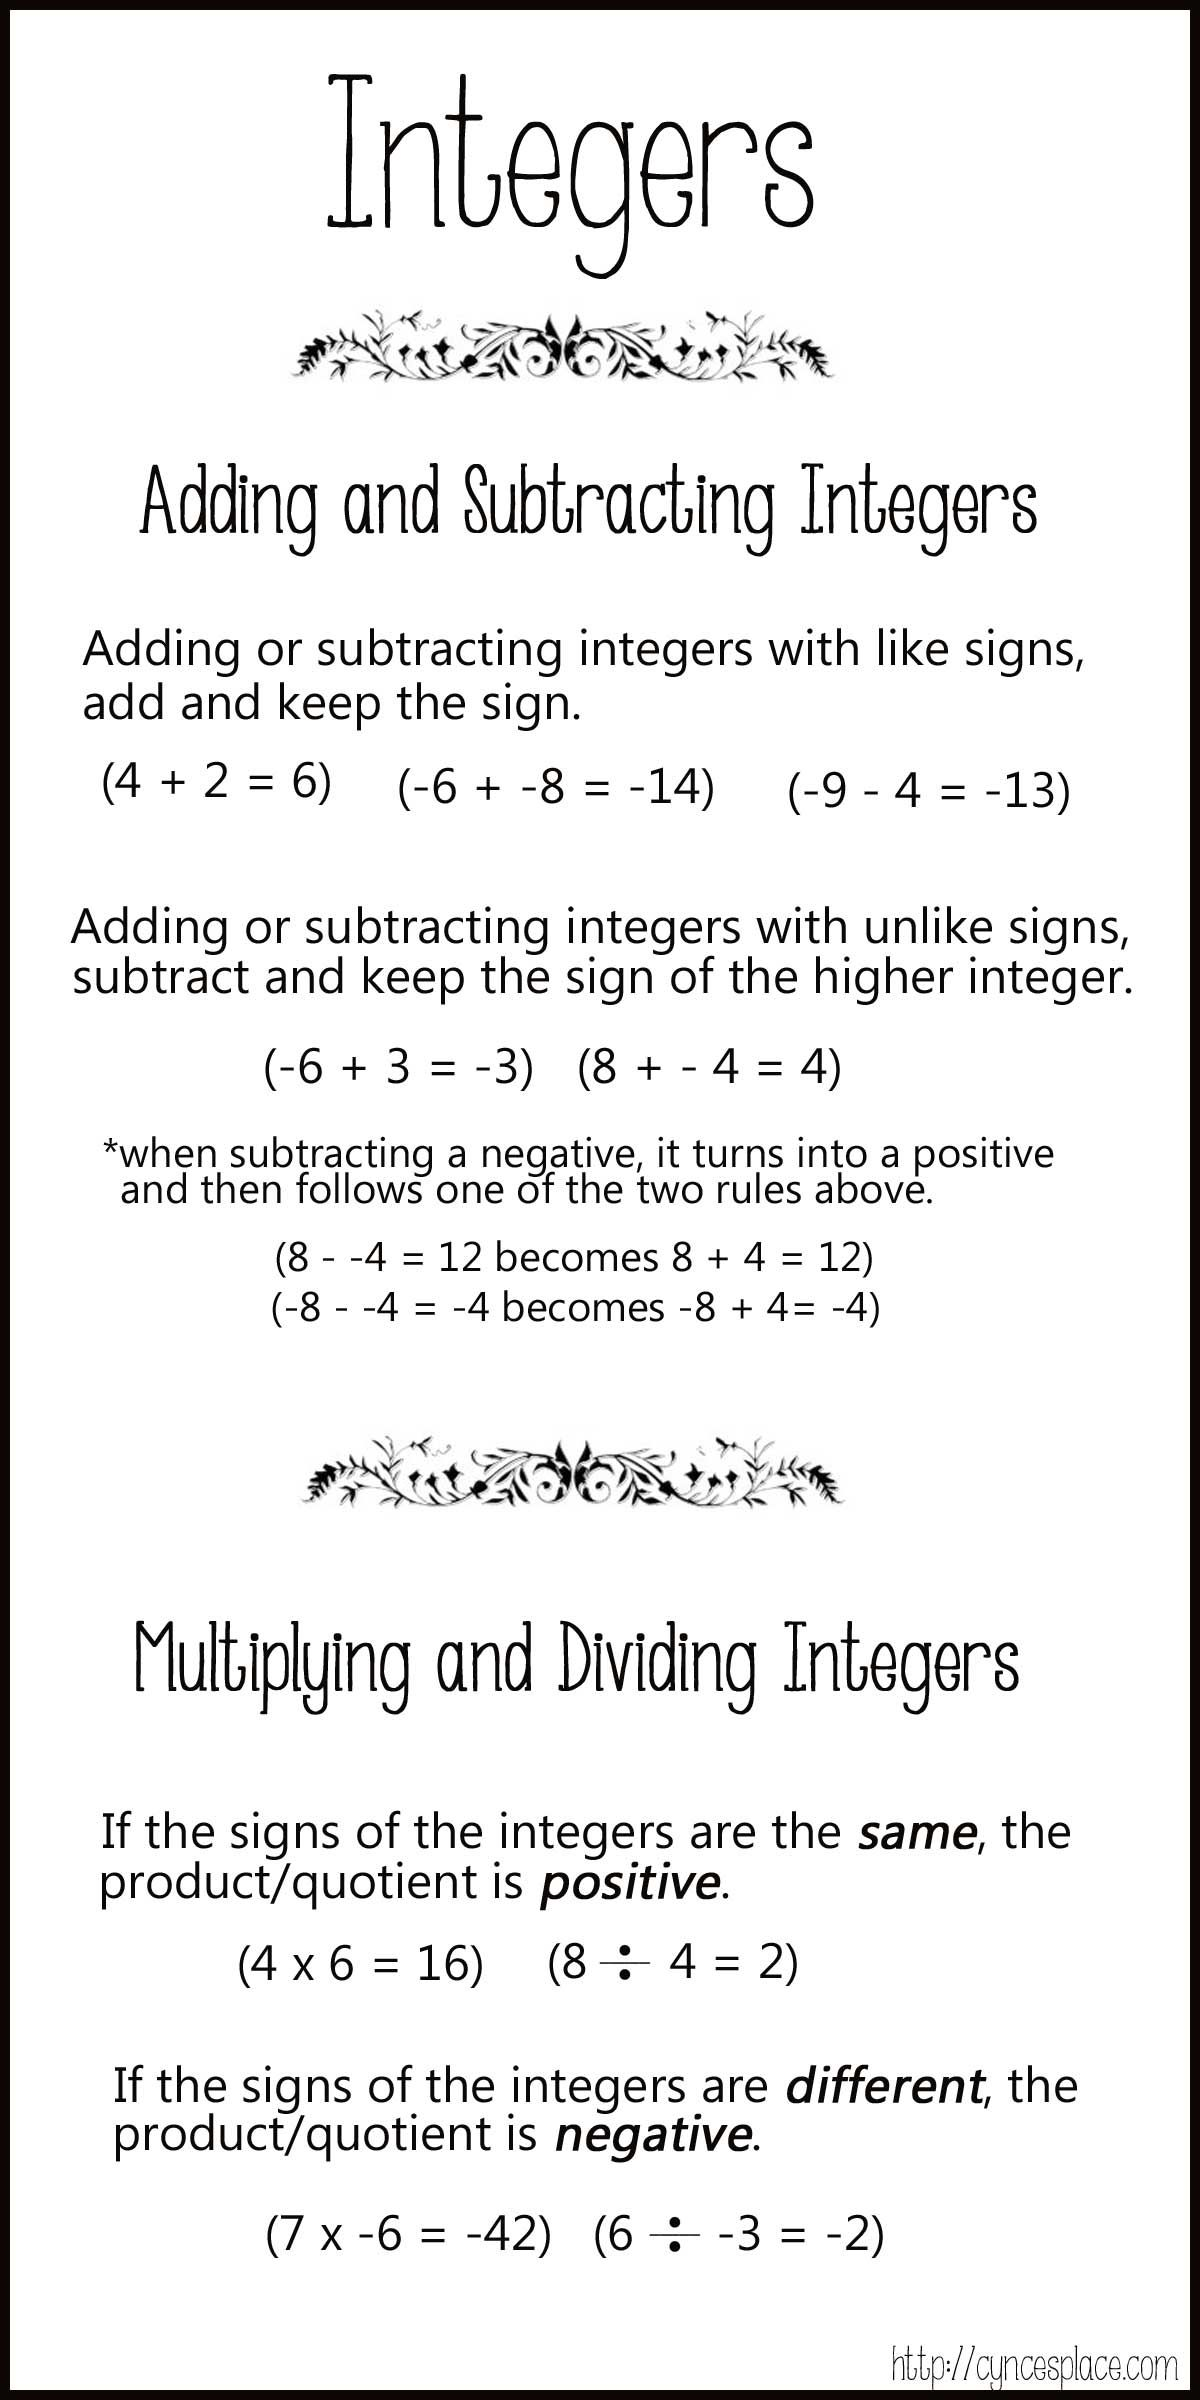 Adding Subtracting Multiplying And Dividing Integers Chart 3 1 200 2 400 Pixels